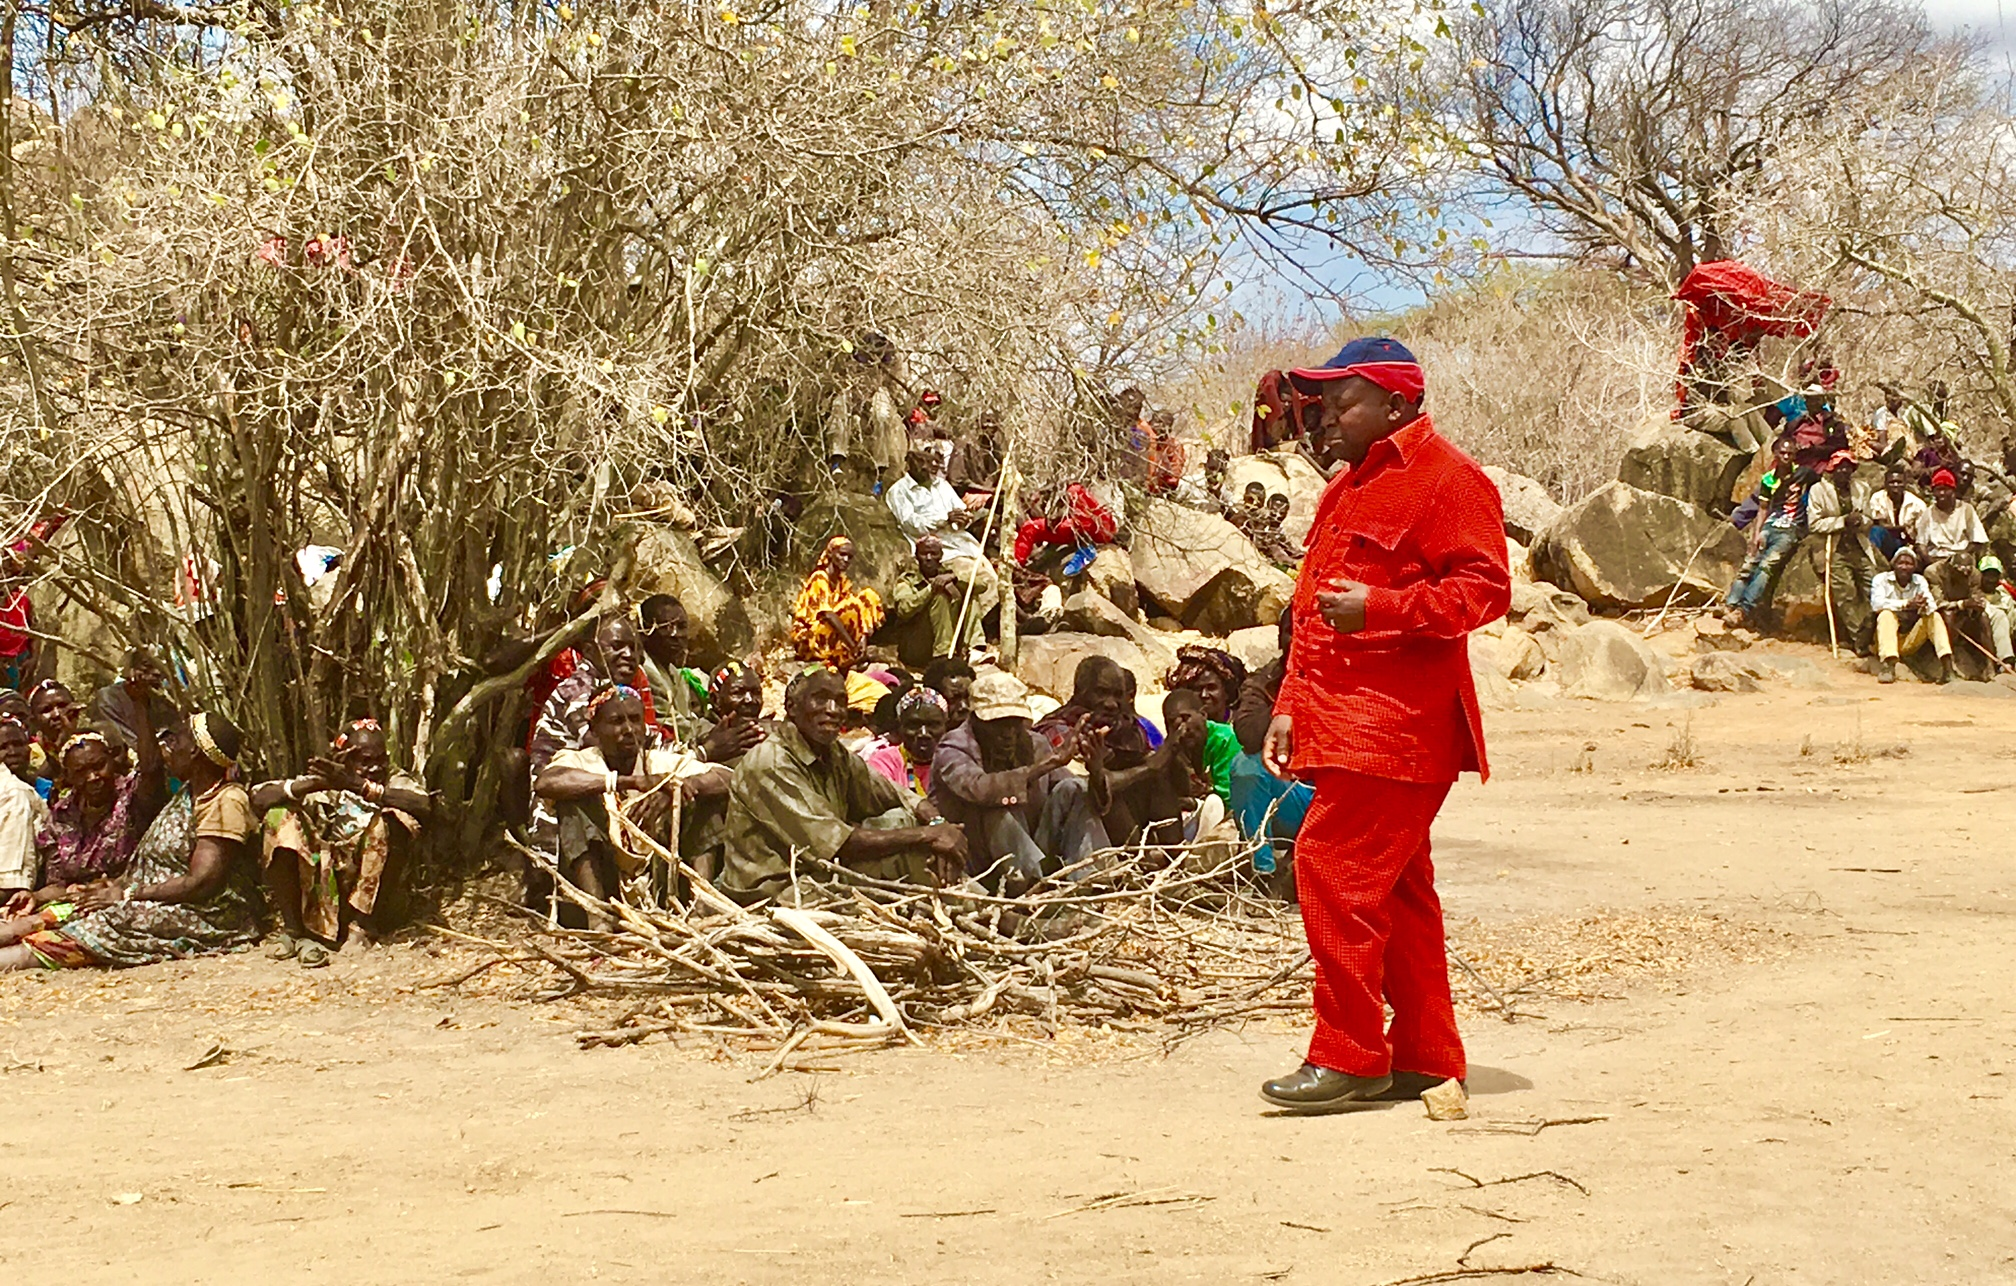 The District Comissioner speaking with the Hadza